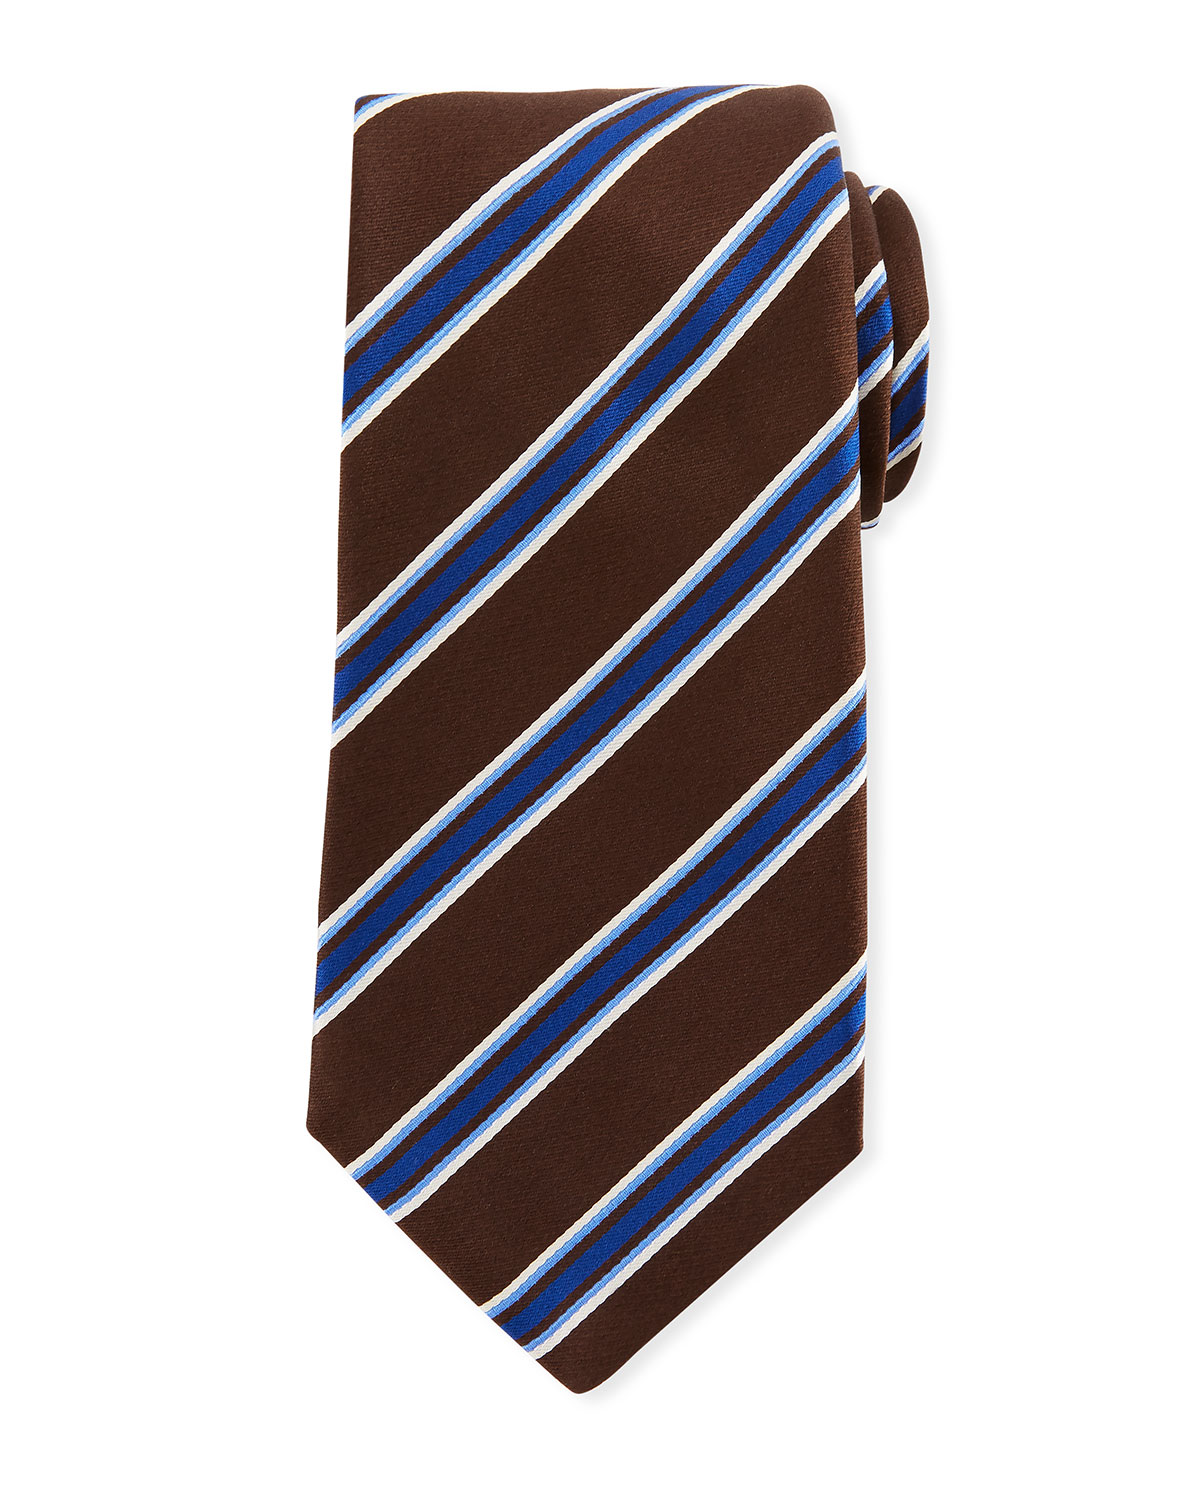 Framed Satin Stripe Tie, Brown